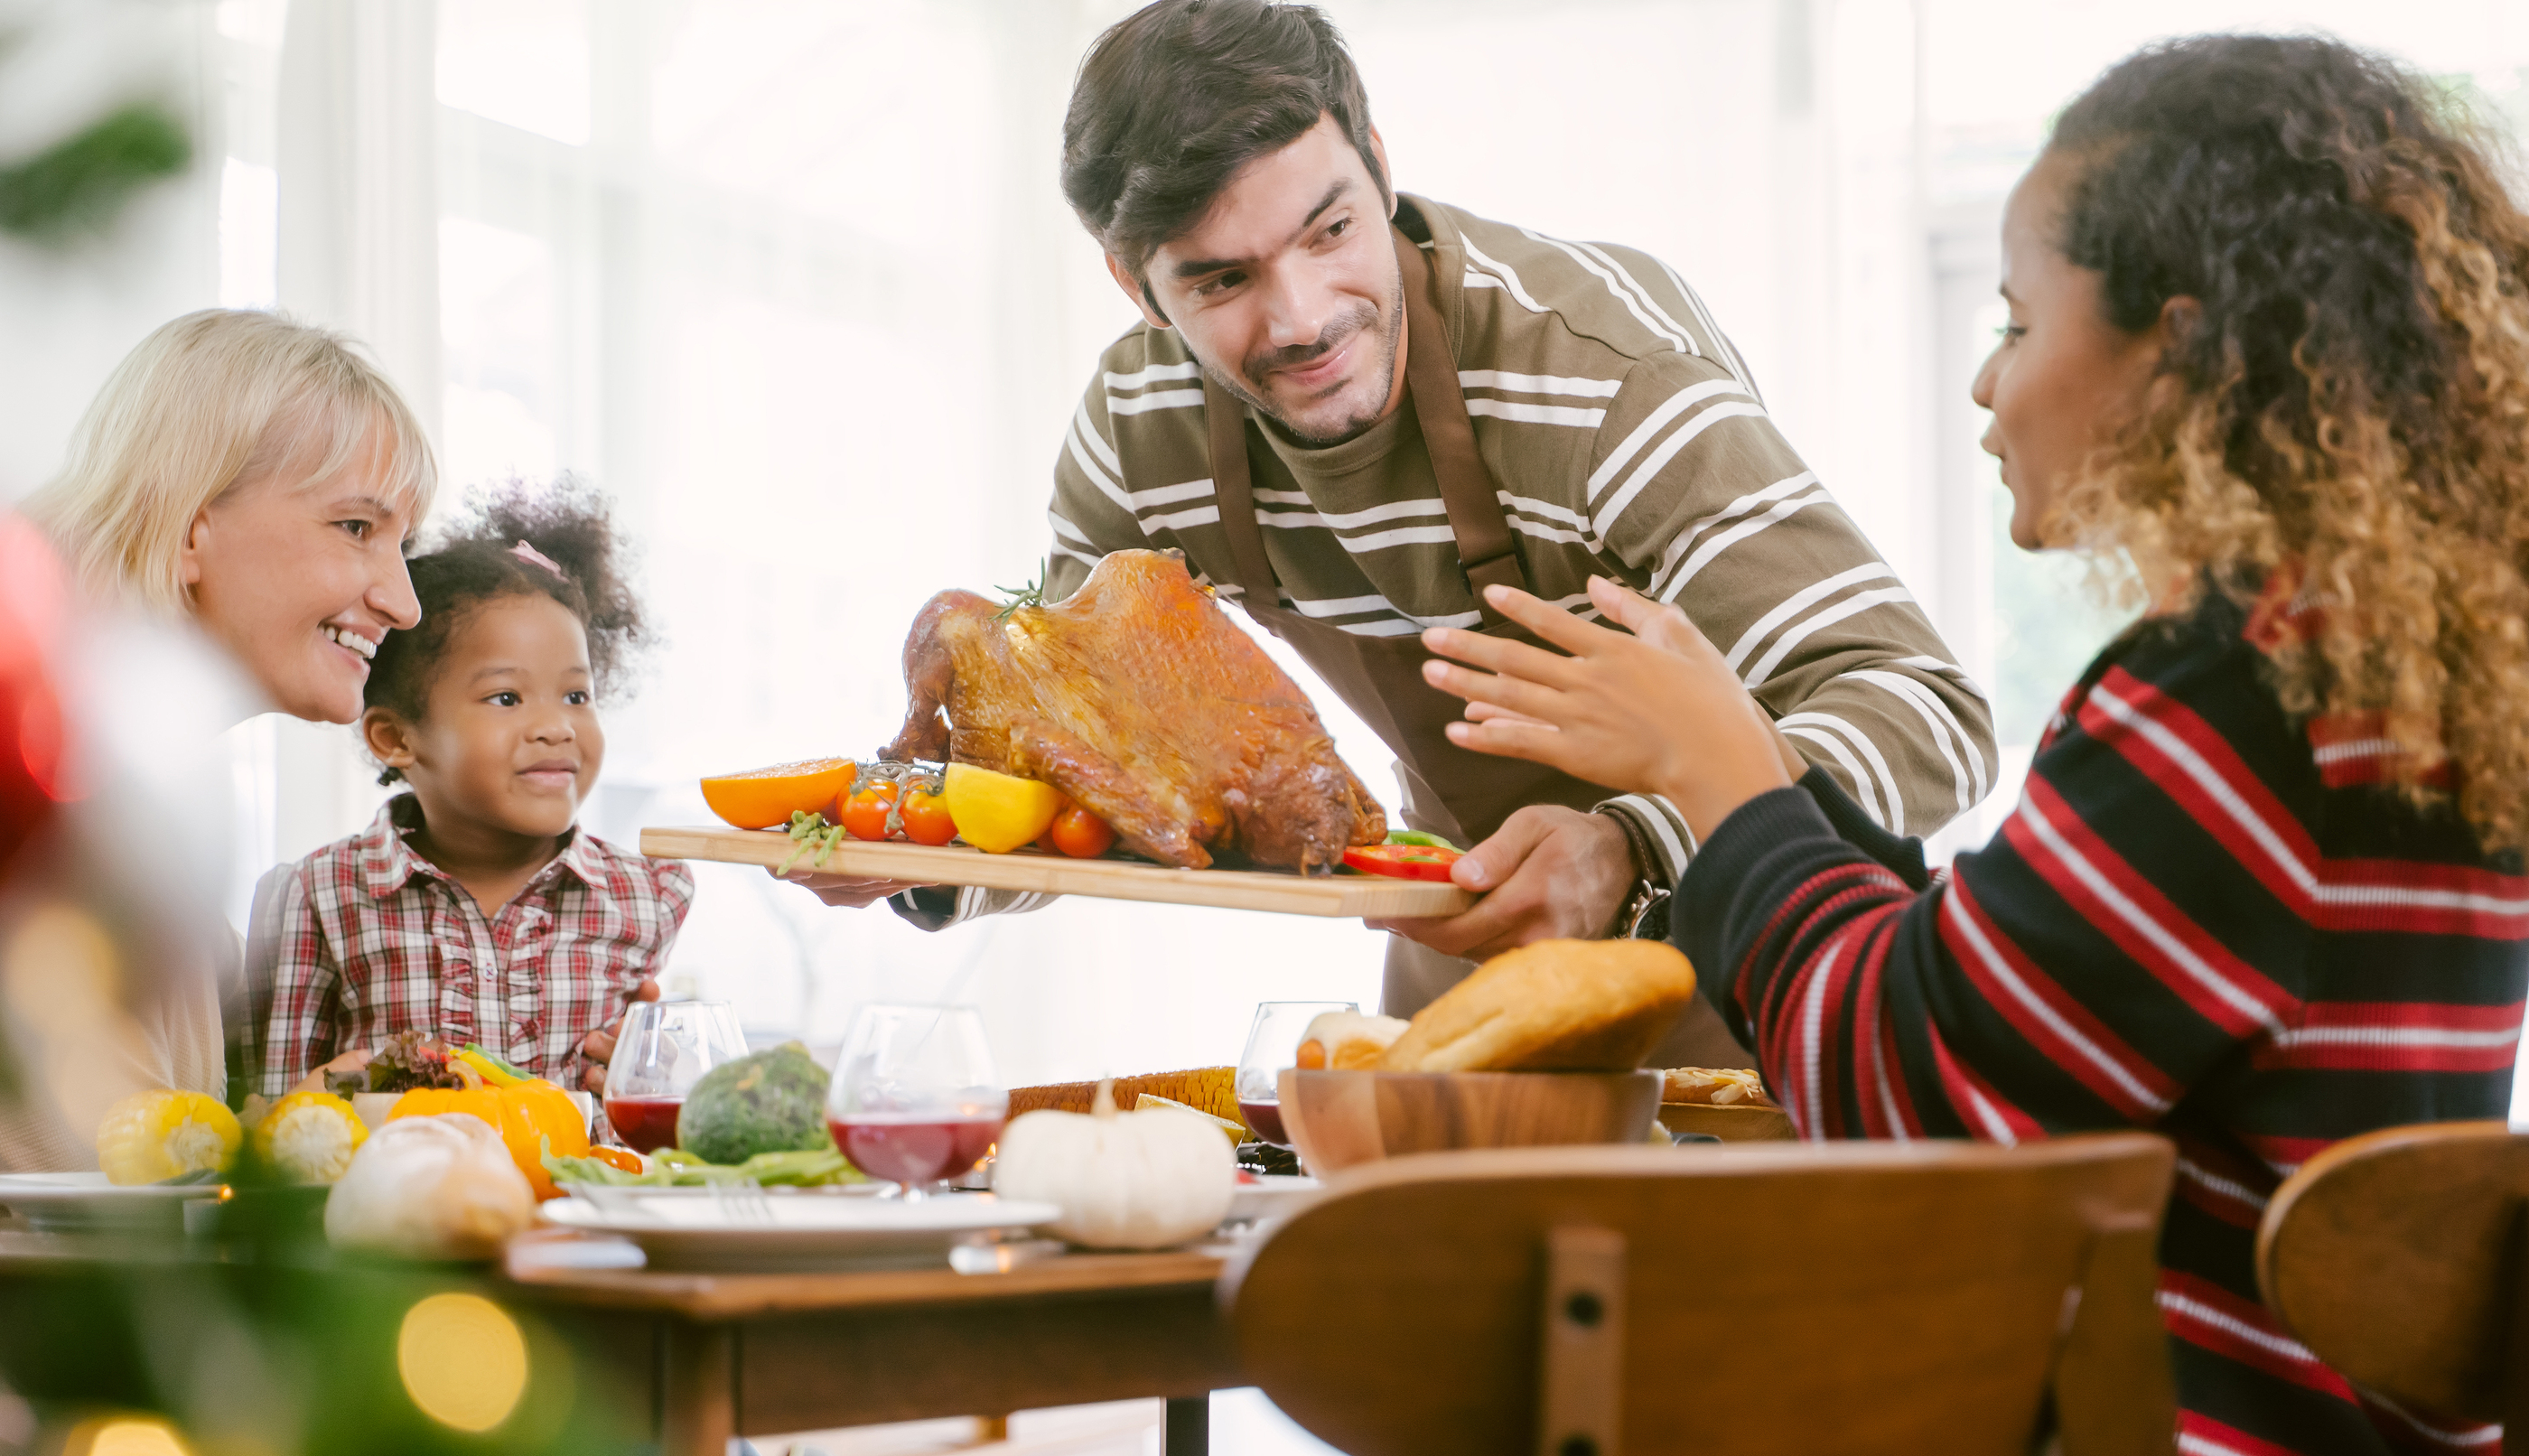 bigstock-Father-Carrying-Turkey-Served--324872740